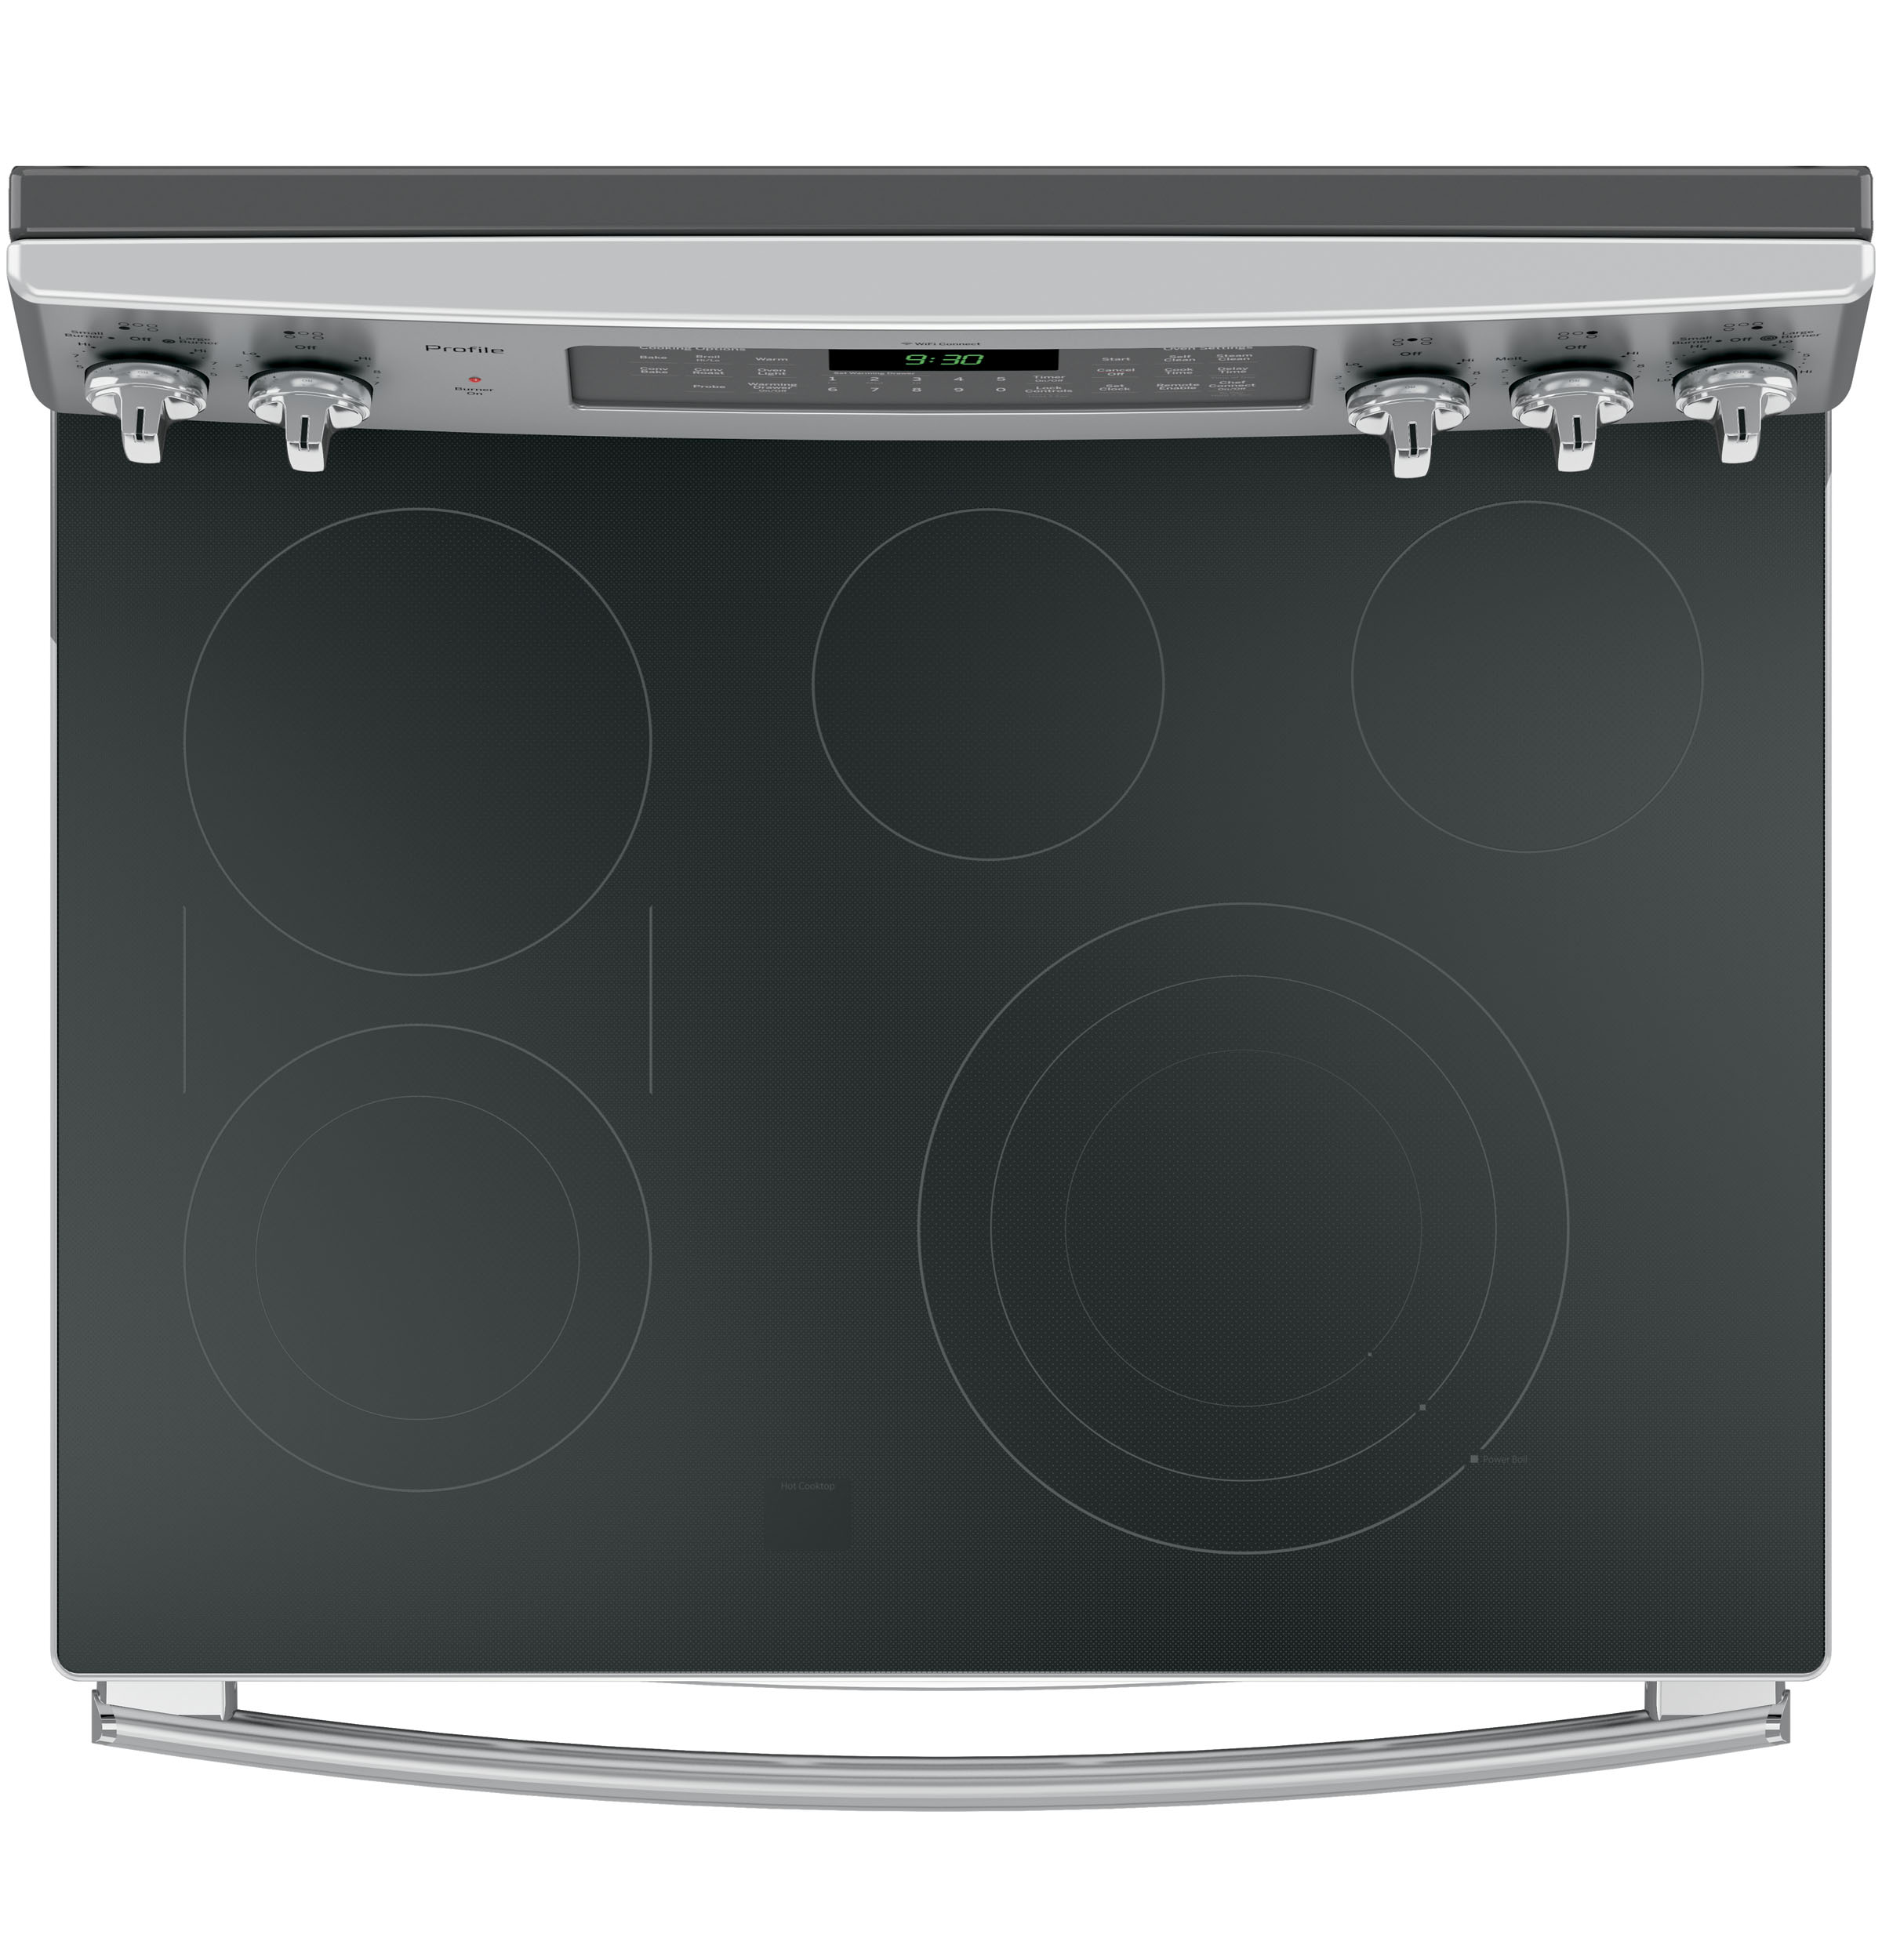 """GE Profile PB930SJSS 30"""" Electric Convection Range w/ Warming Drawer - Stainless Steel"""